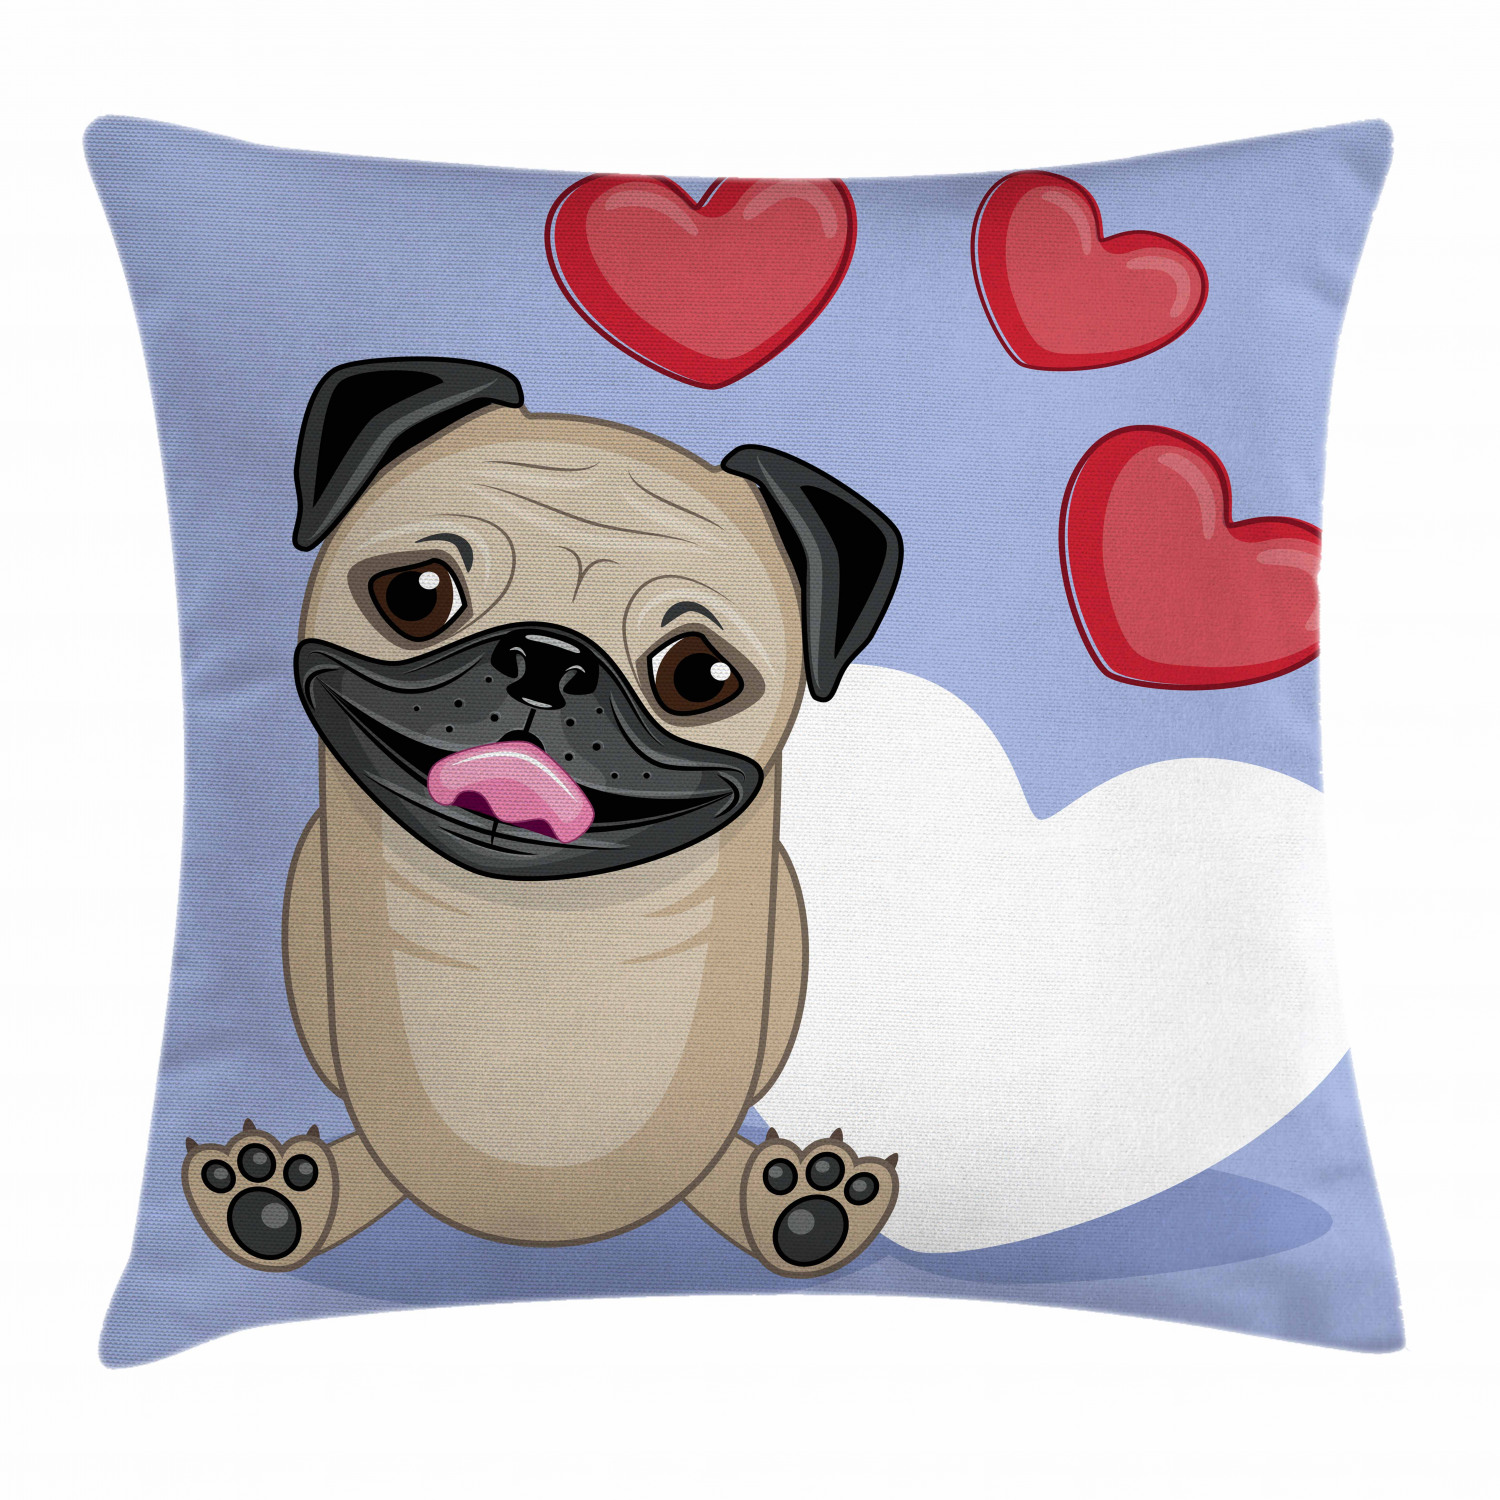 Pug Throw Pillow Cushion Cover Happy Cute Dog Licking Its Lips With Three Red And One Big White Heart Love Theme Decorative Square Accent Pillow Case 20 X 20 Inches Pale Brown